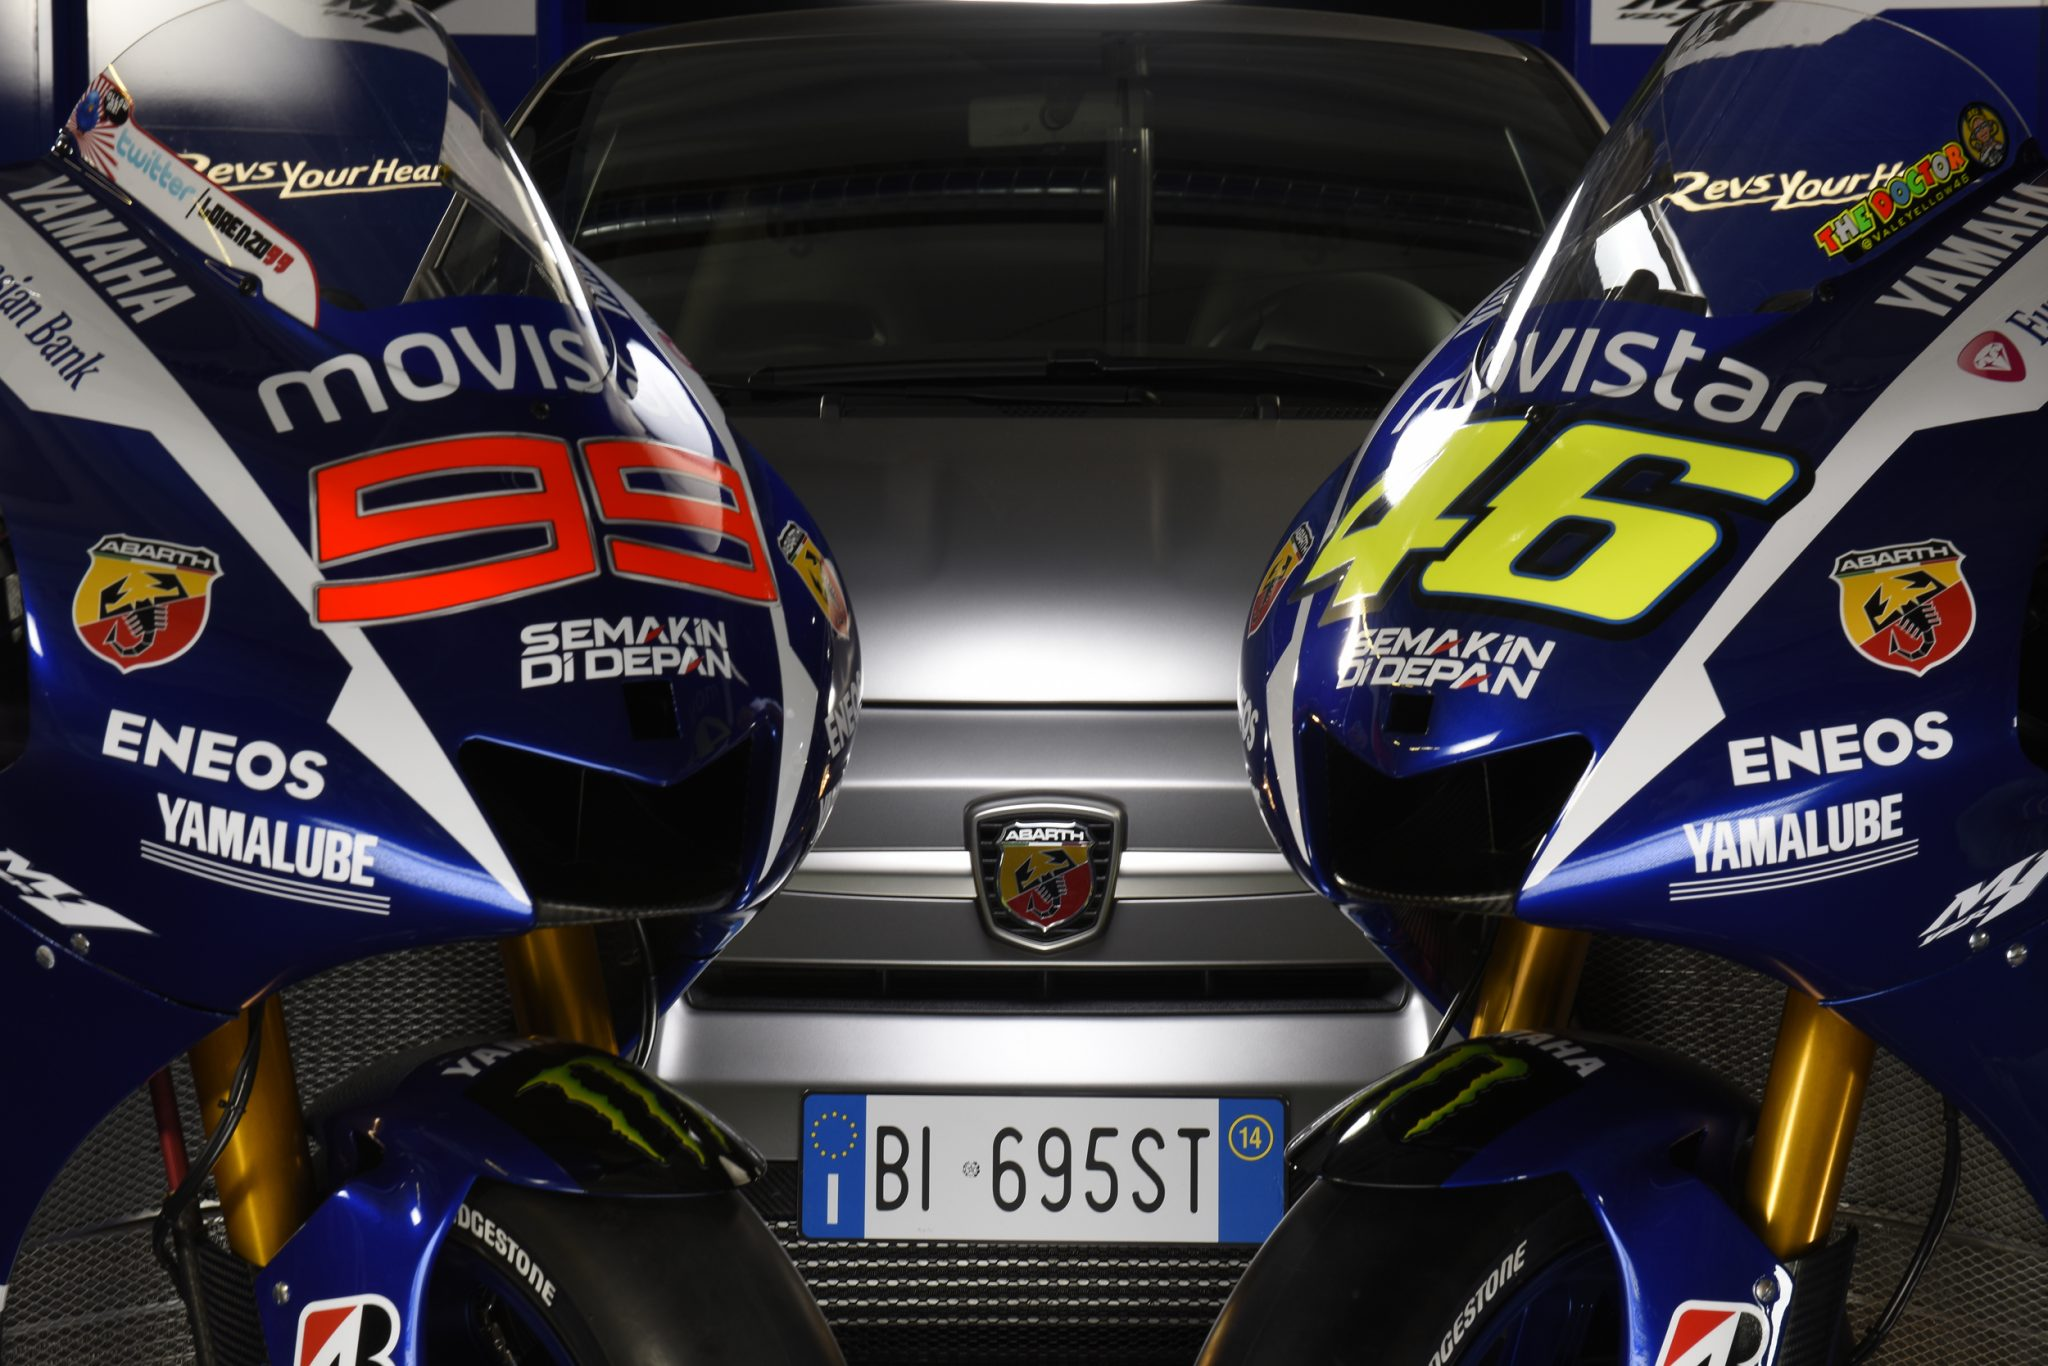 motogp-racing-wallpaper-background-hd-16